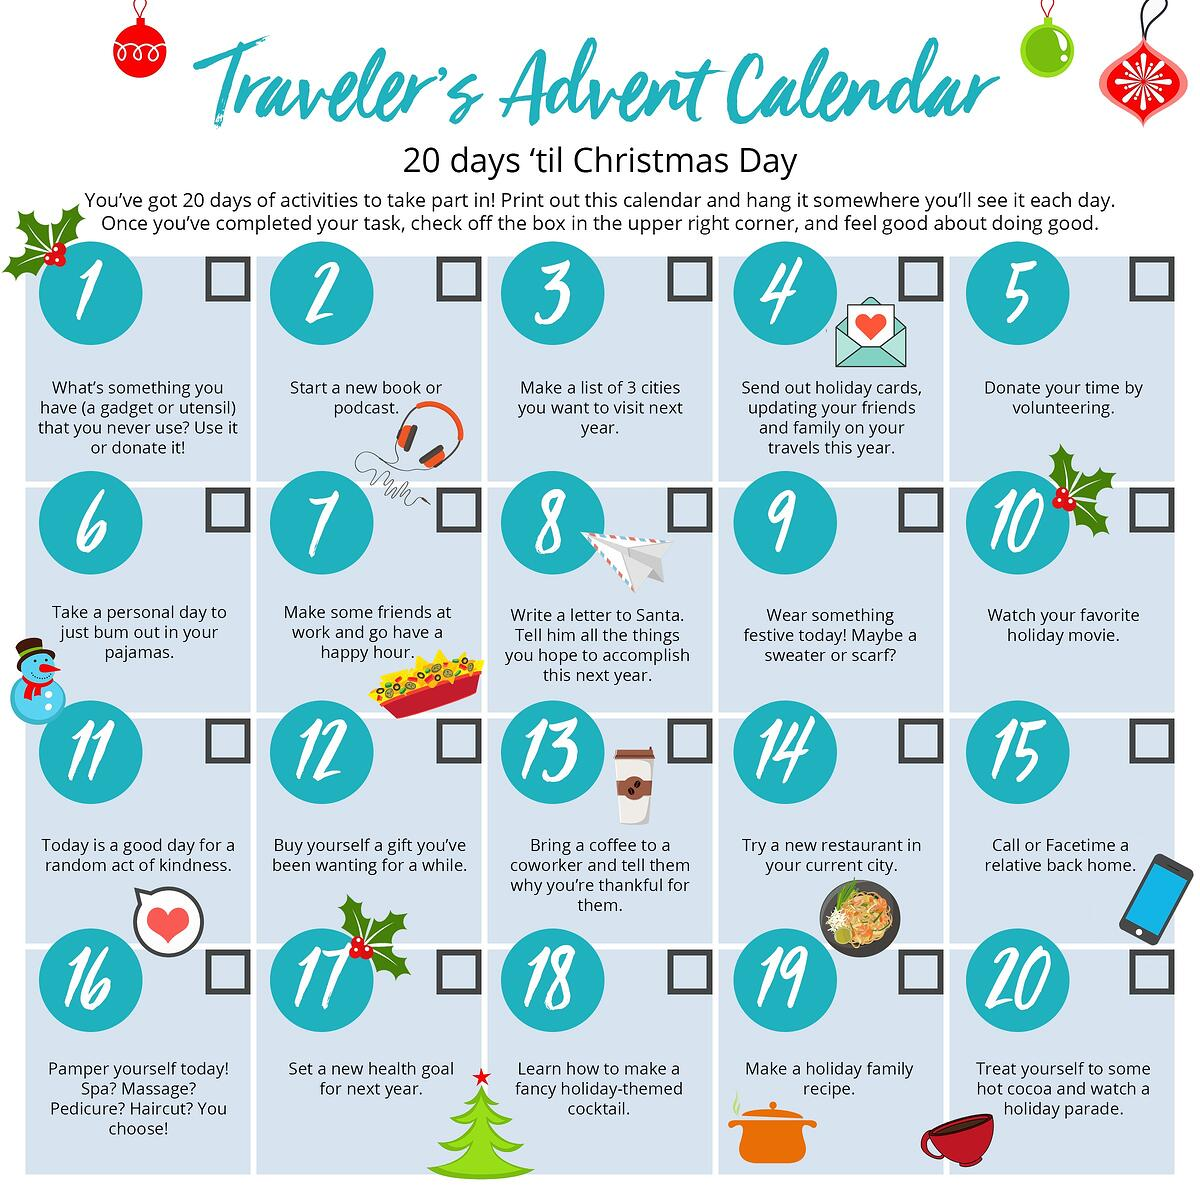 Travelers Advent Calendar